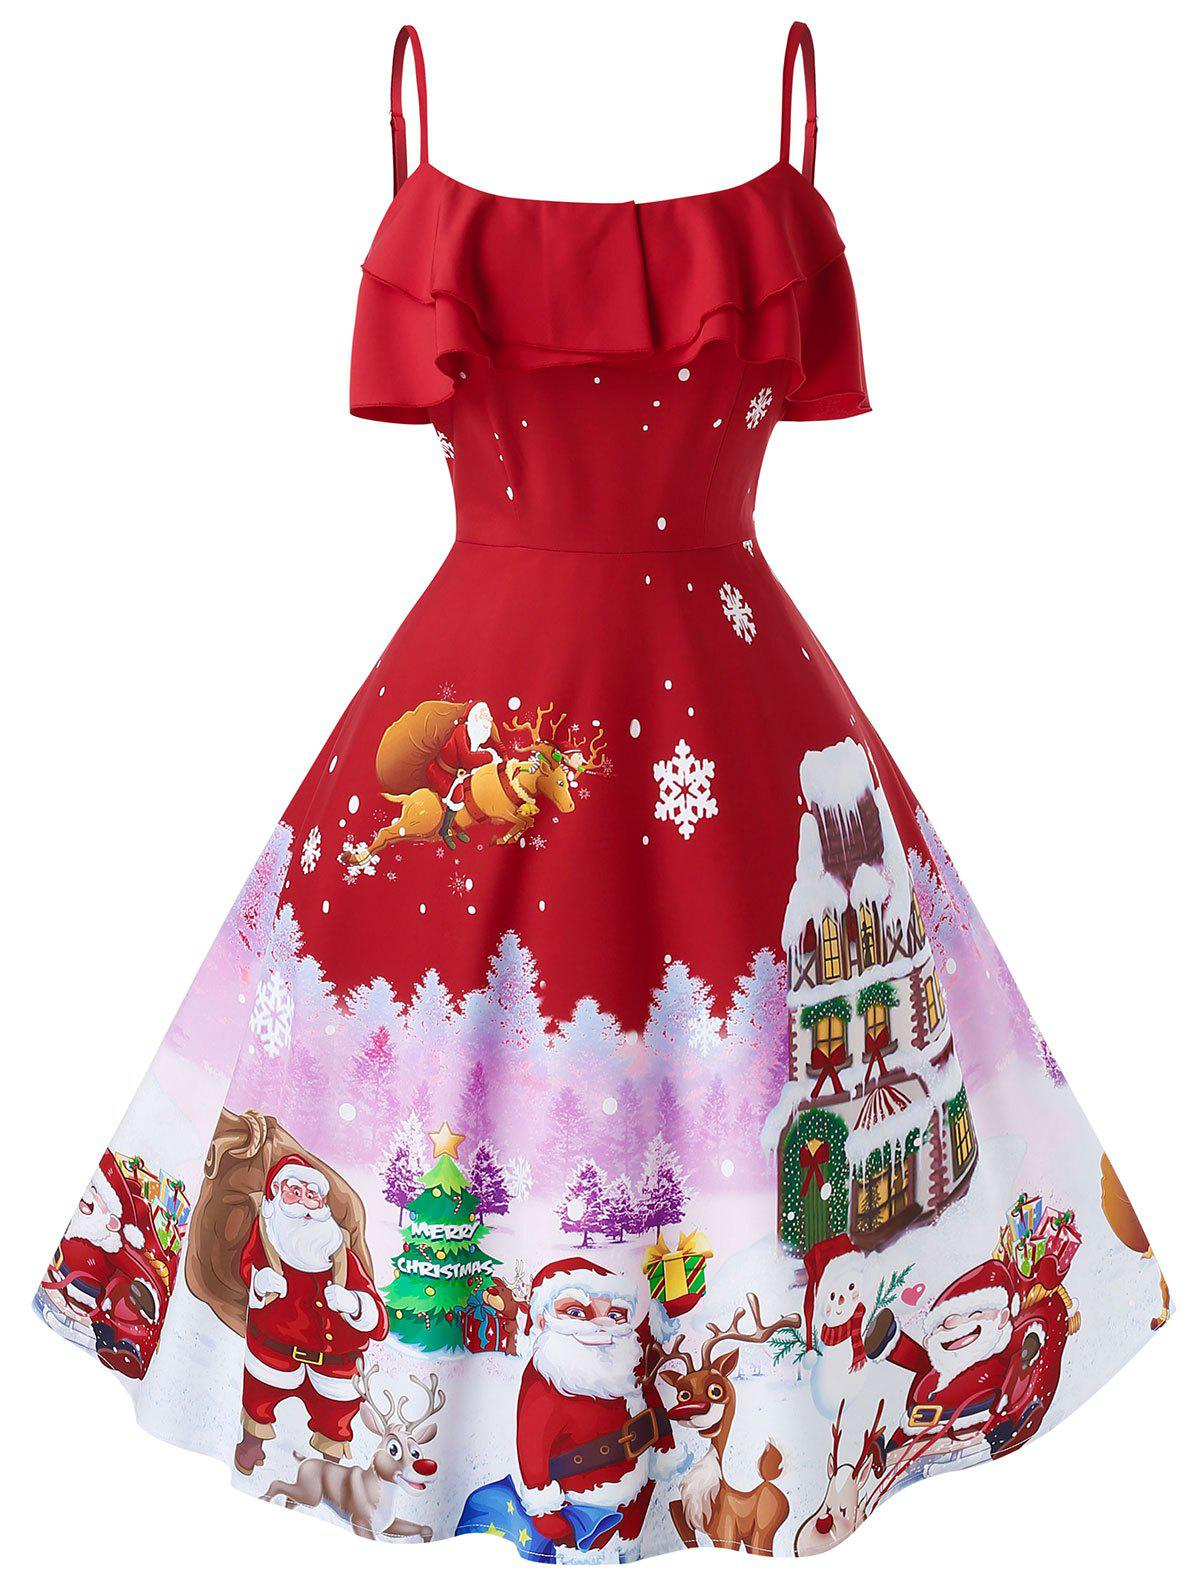 New Plus Size Christmas Vintage Printed Party Dress